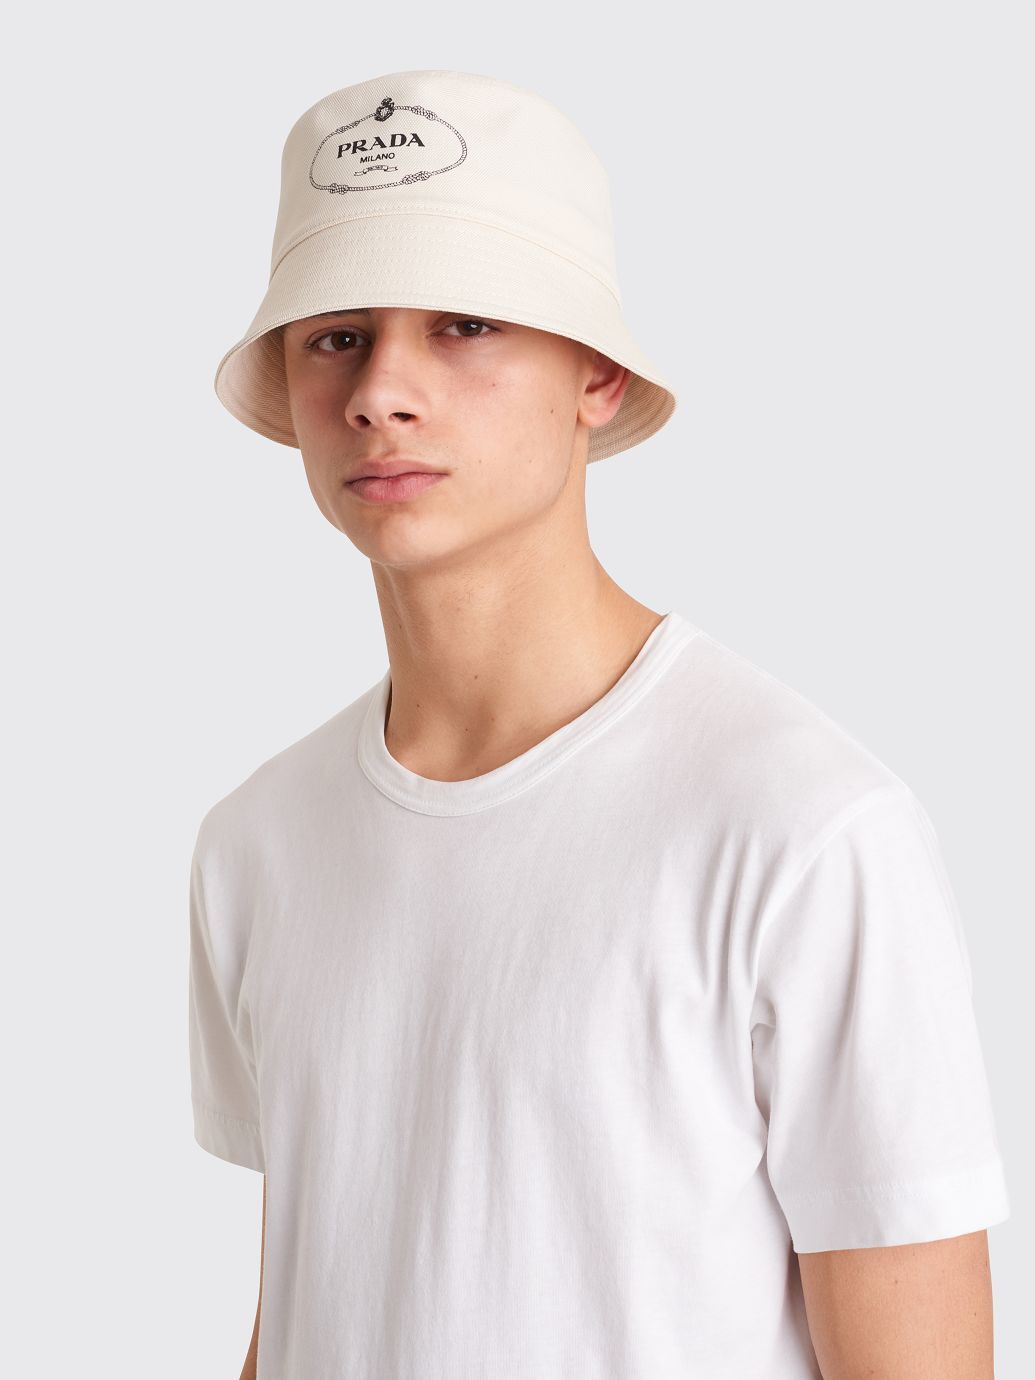 74be085fb65df2 Hat from Prada made of a cotton canvas material with tonal top stitching  and printed heritage logo on the front.